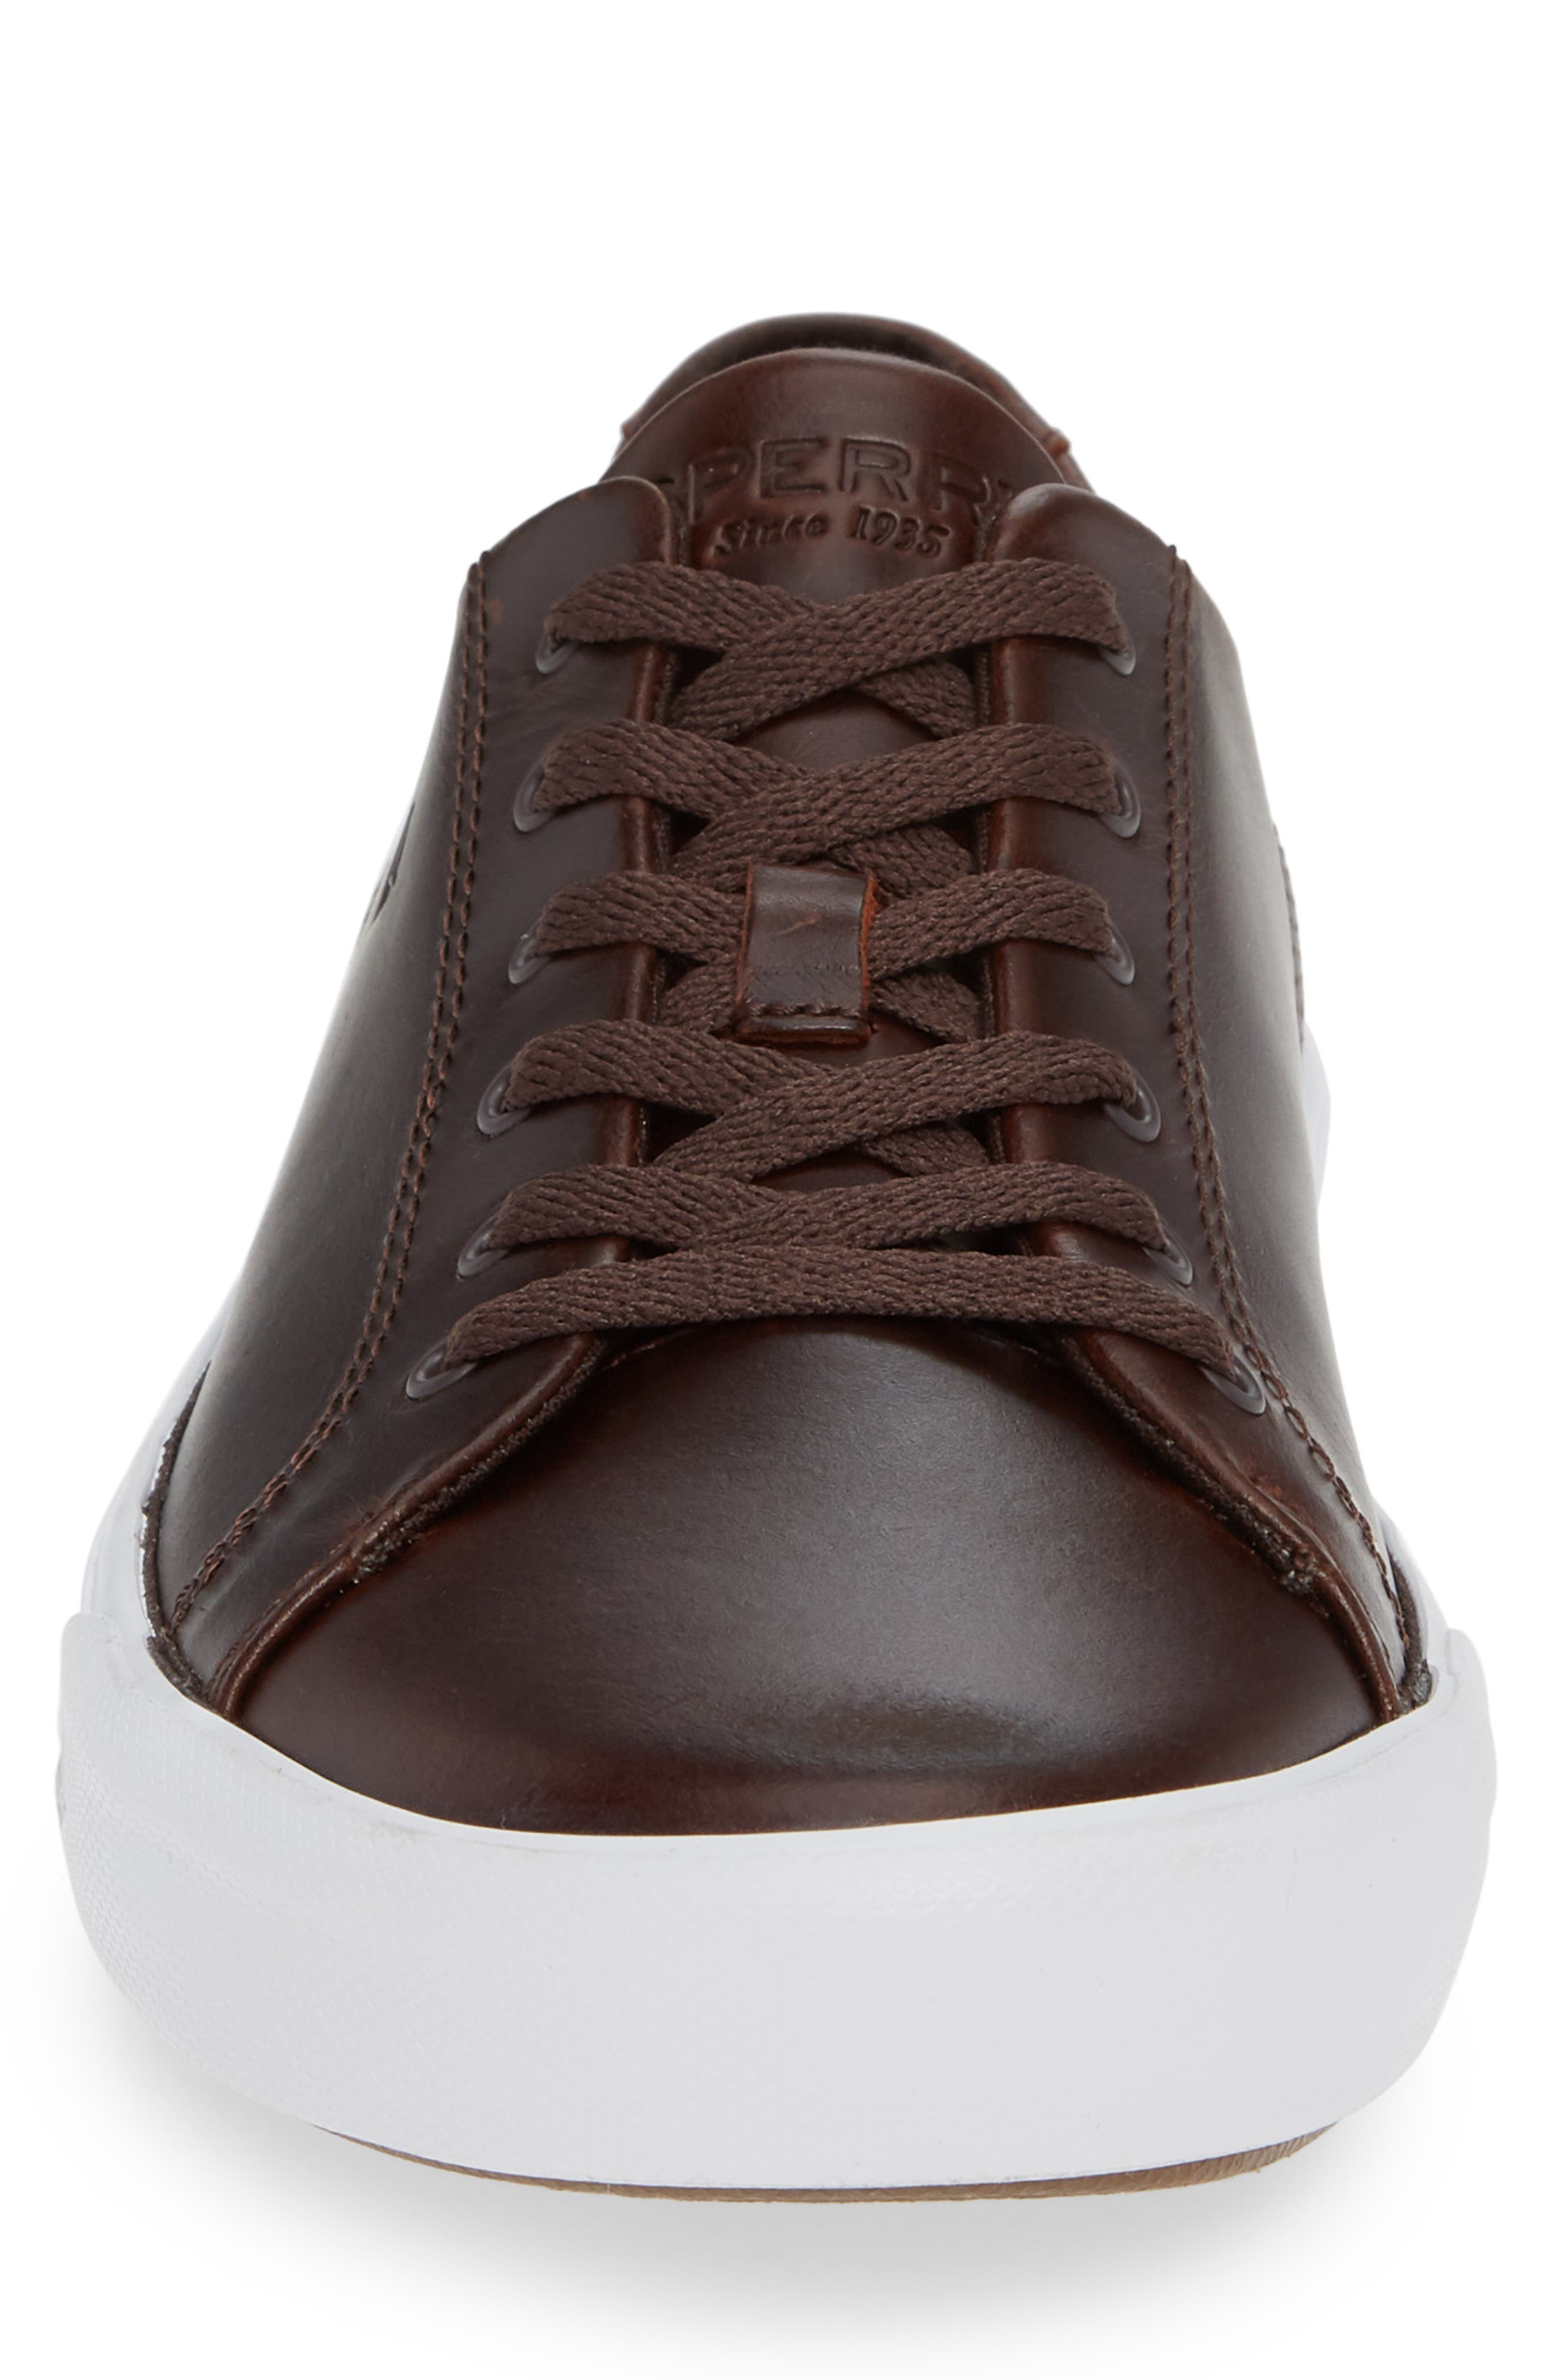 SPERRY, Striper II Sneaker, Alternate thumbnail 4, color, AMARETTO LEATHER